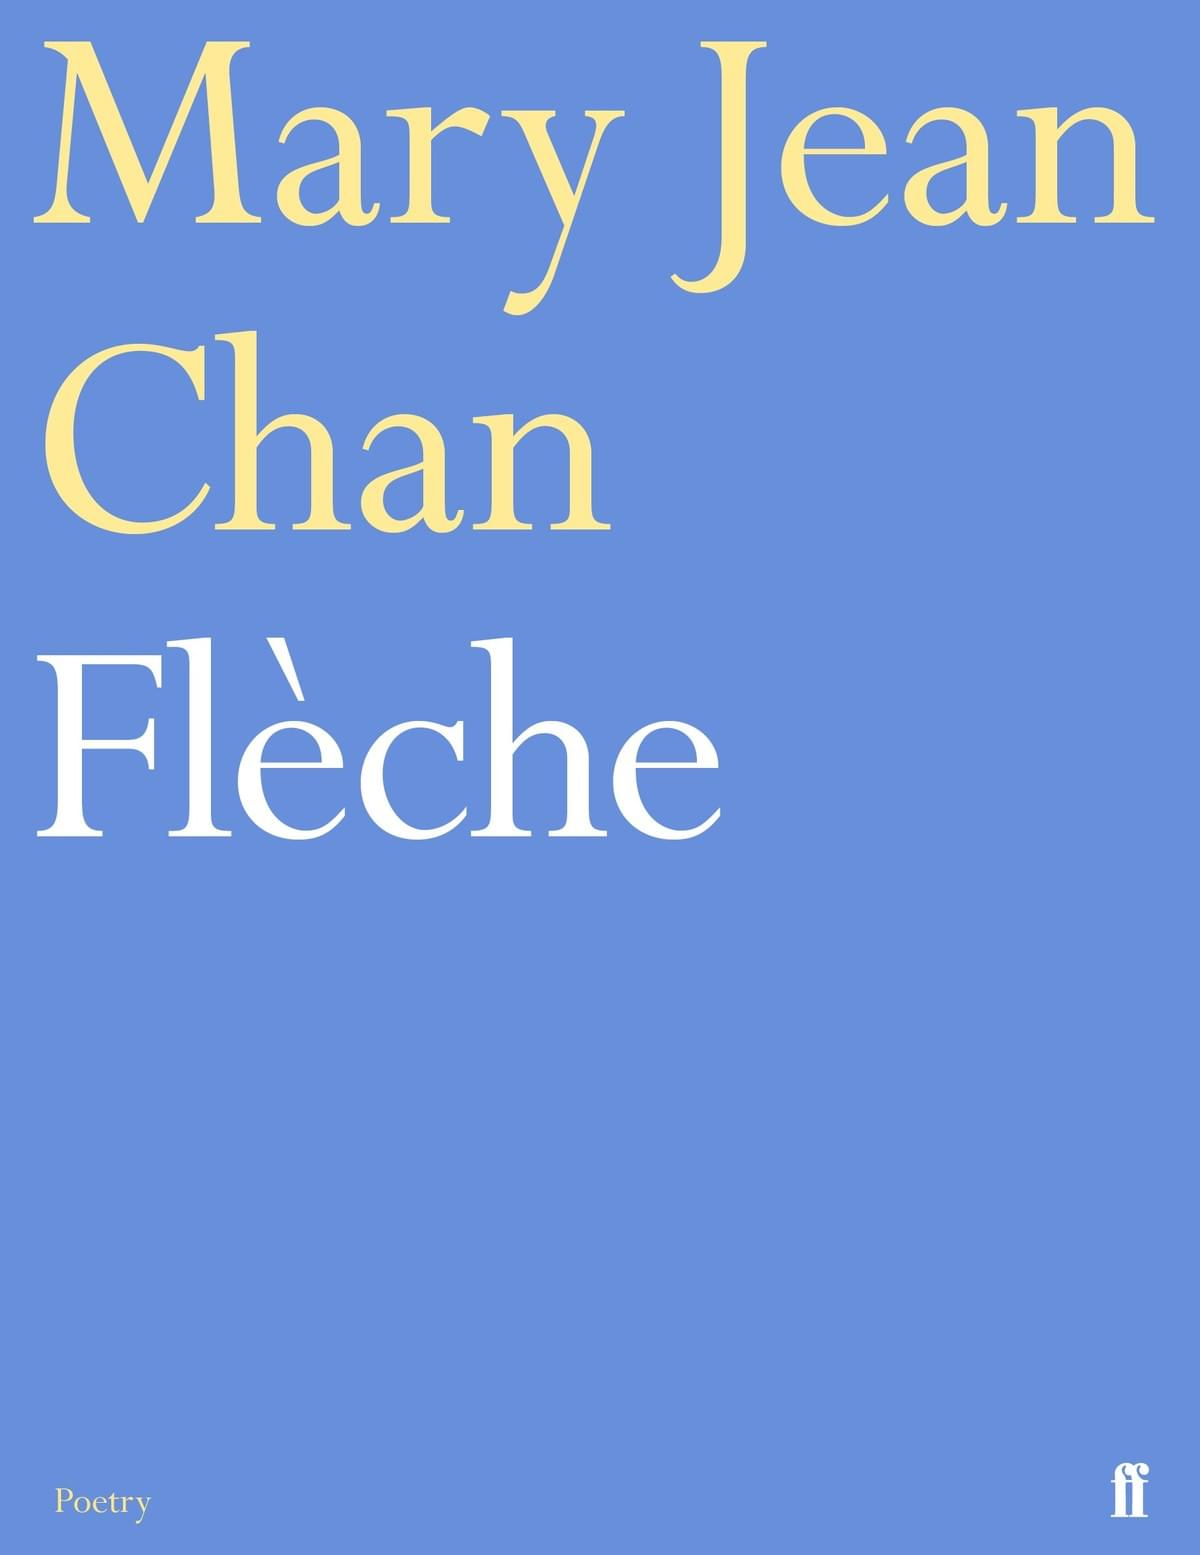 Mary Jean Chan